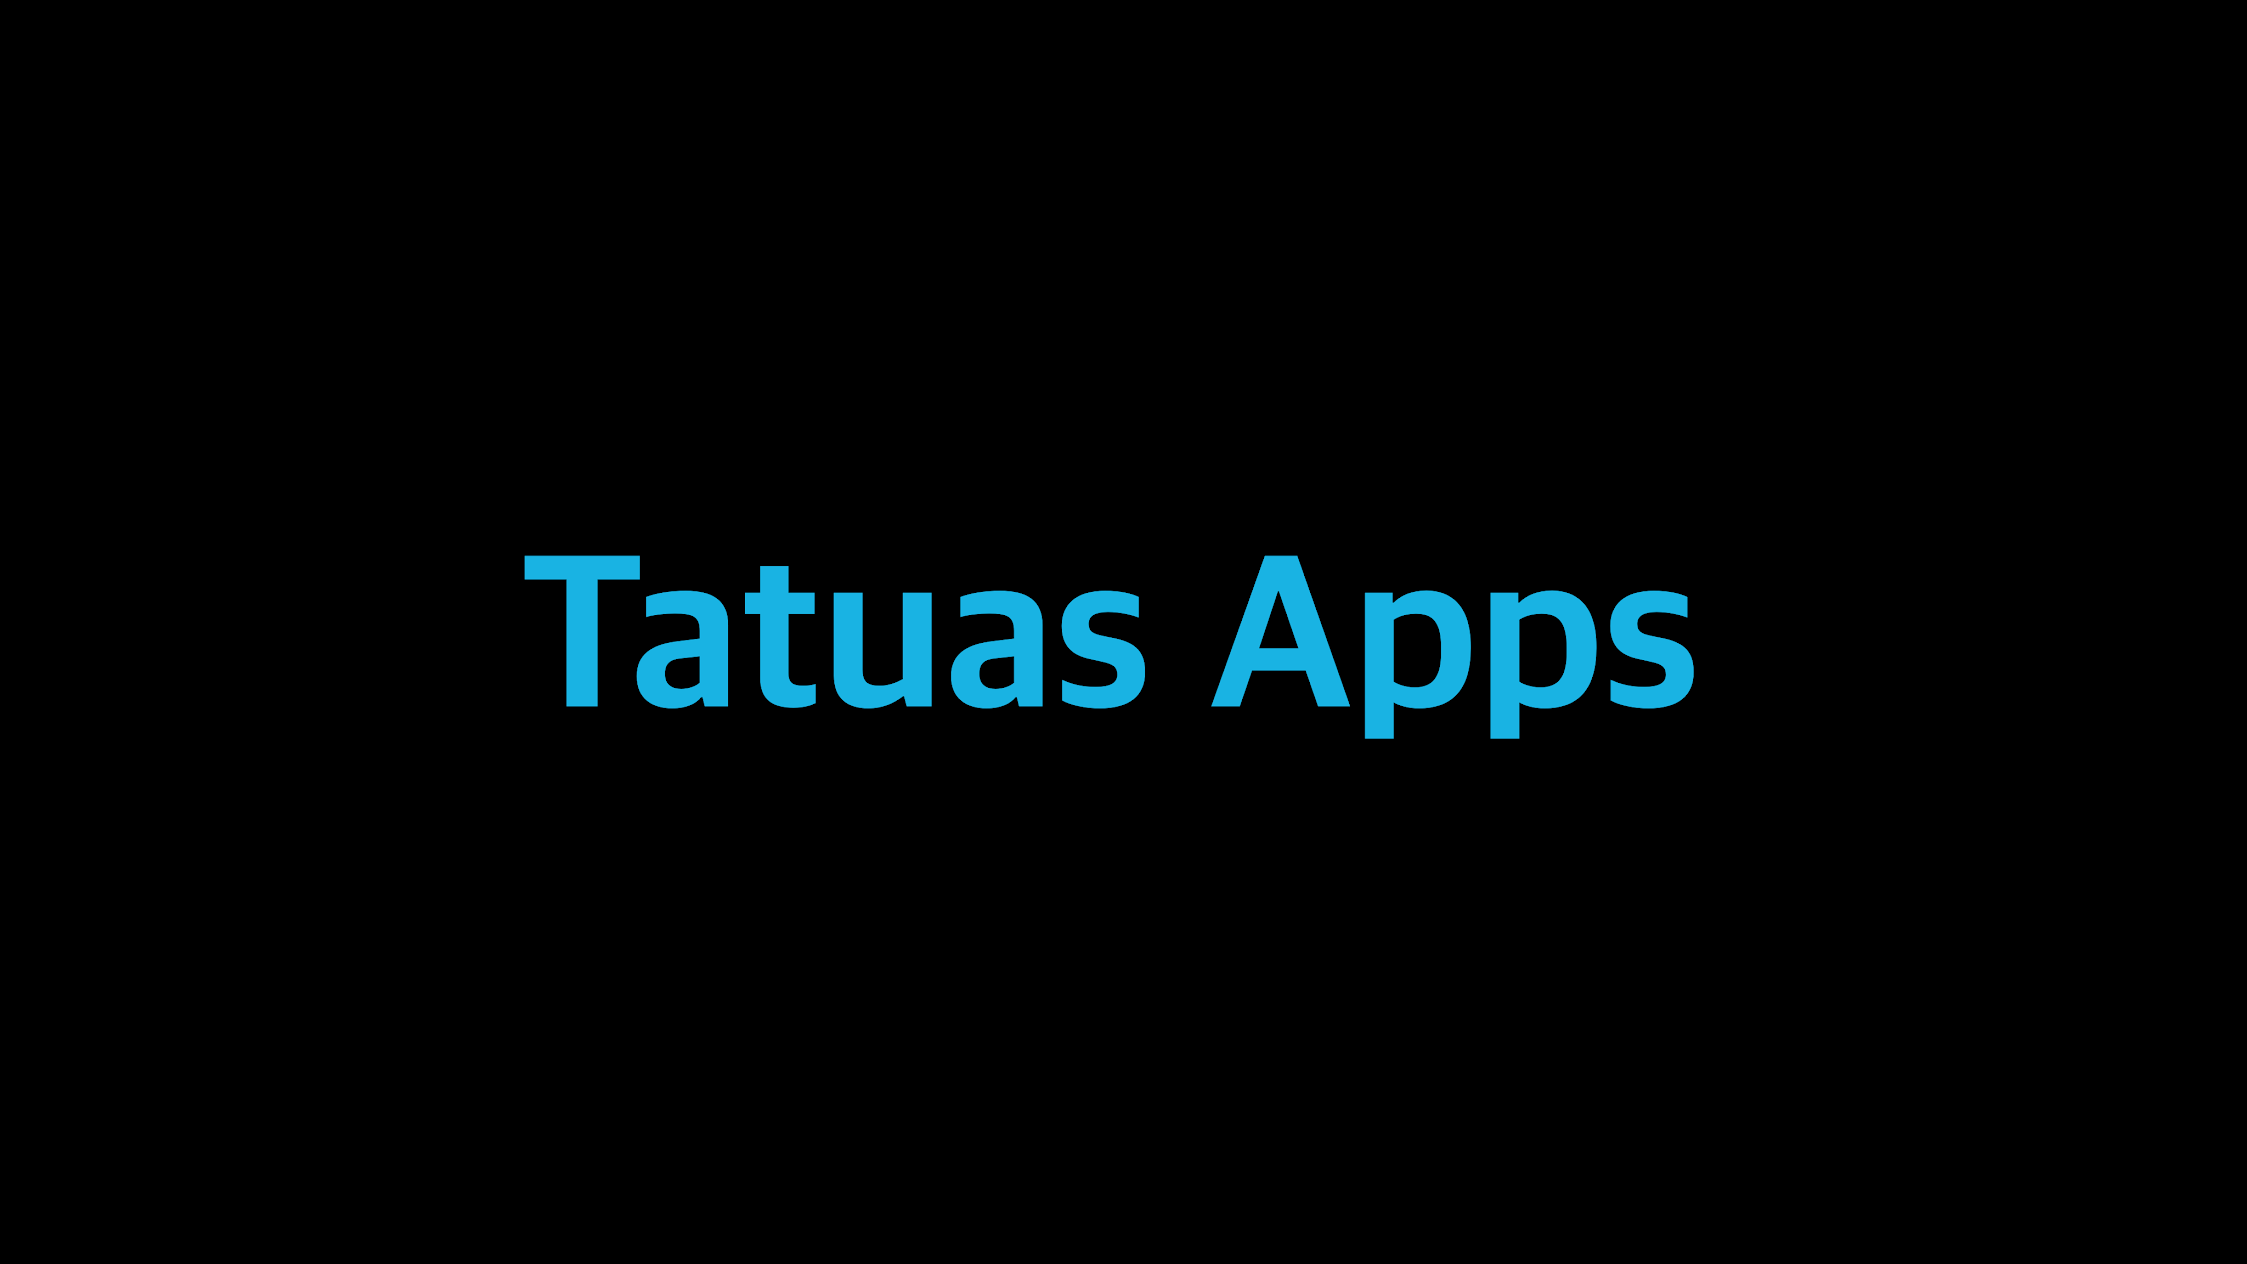 Tatuas Apps